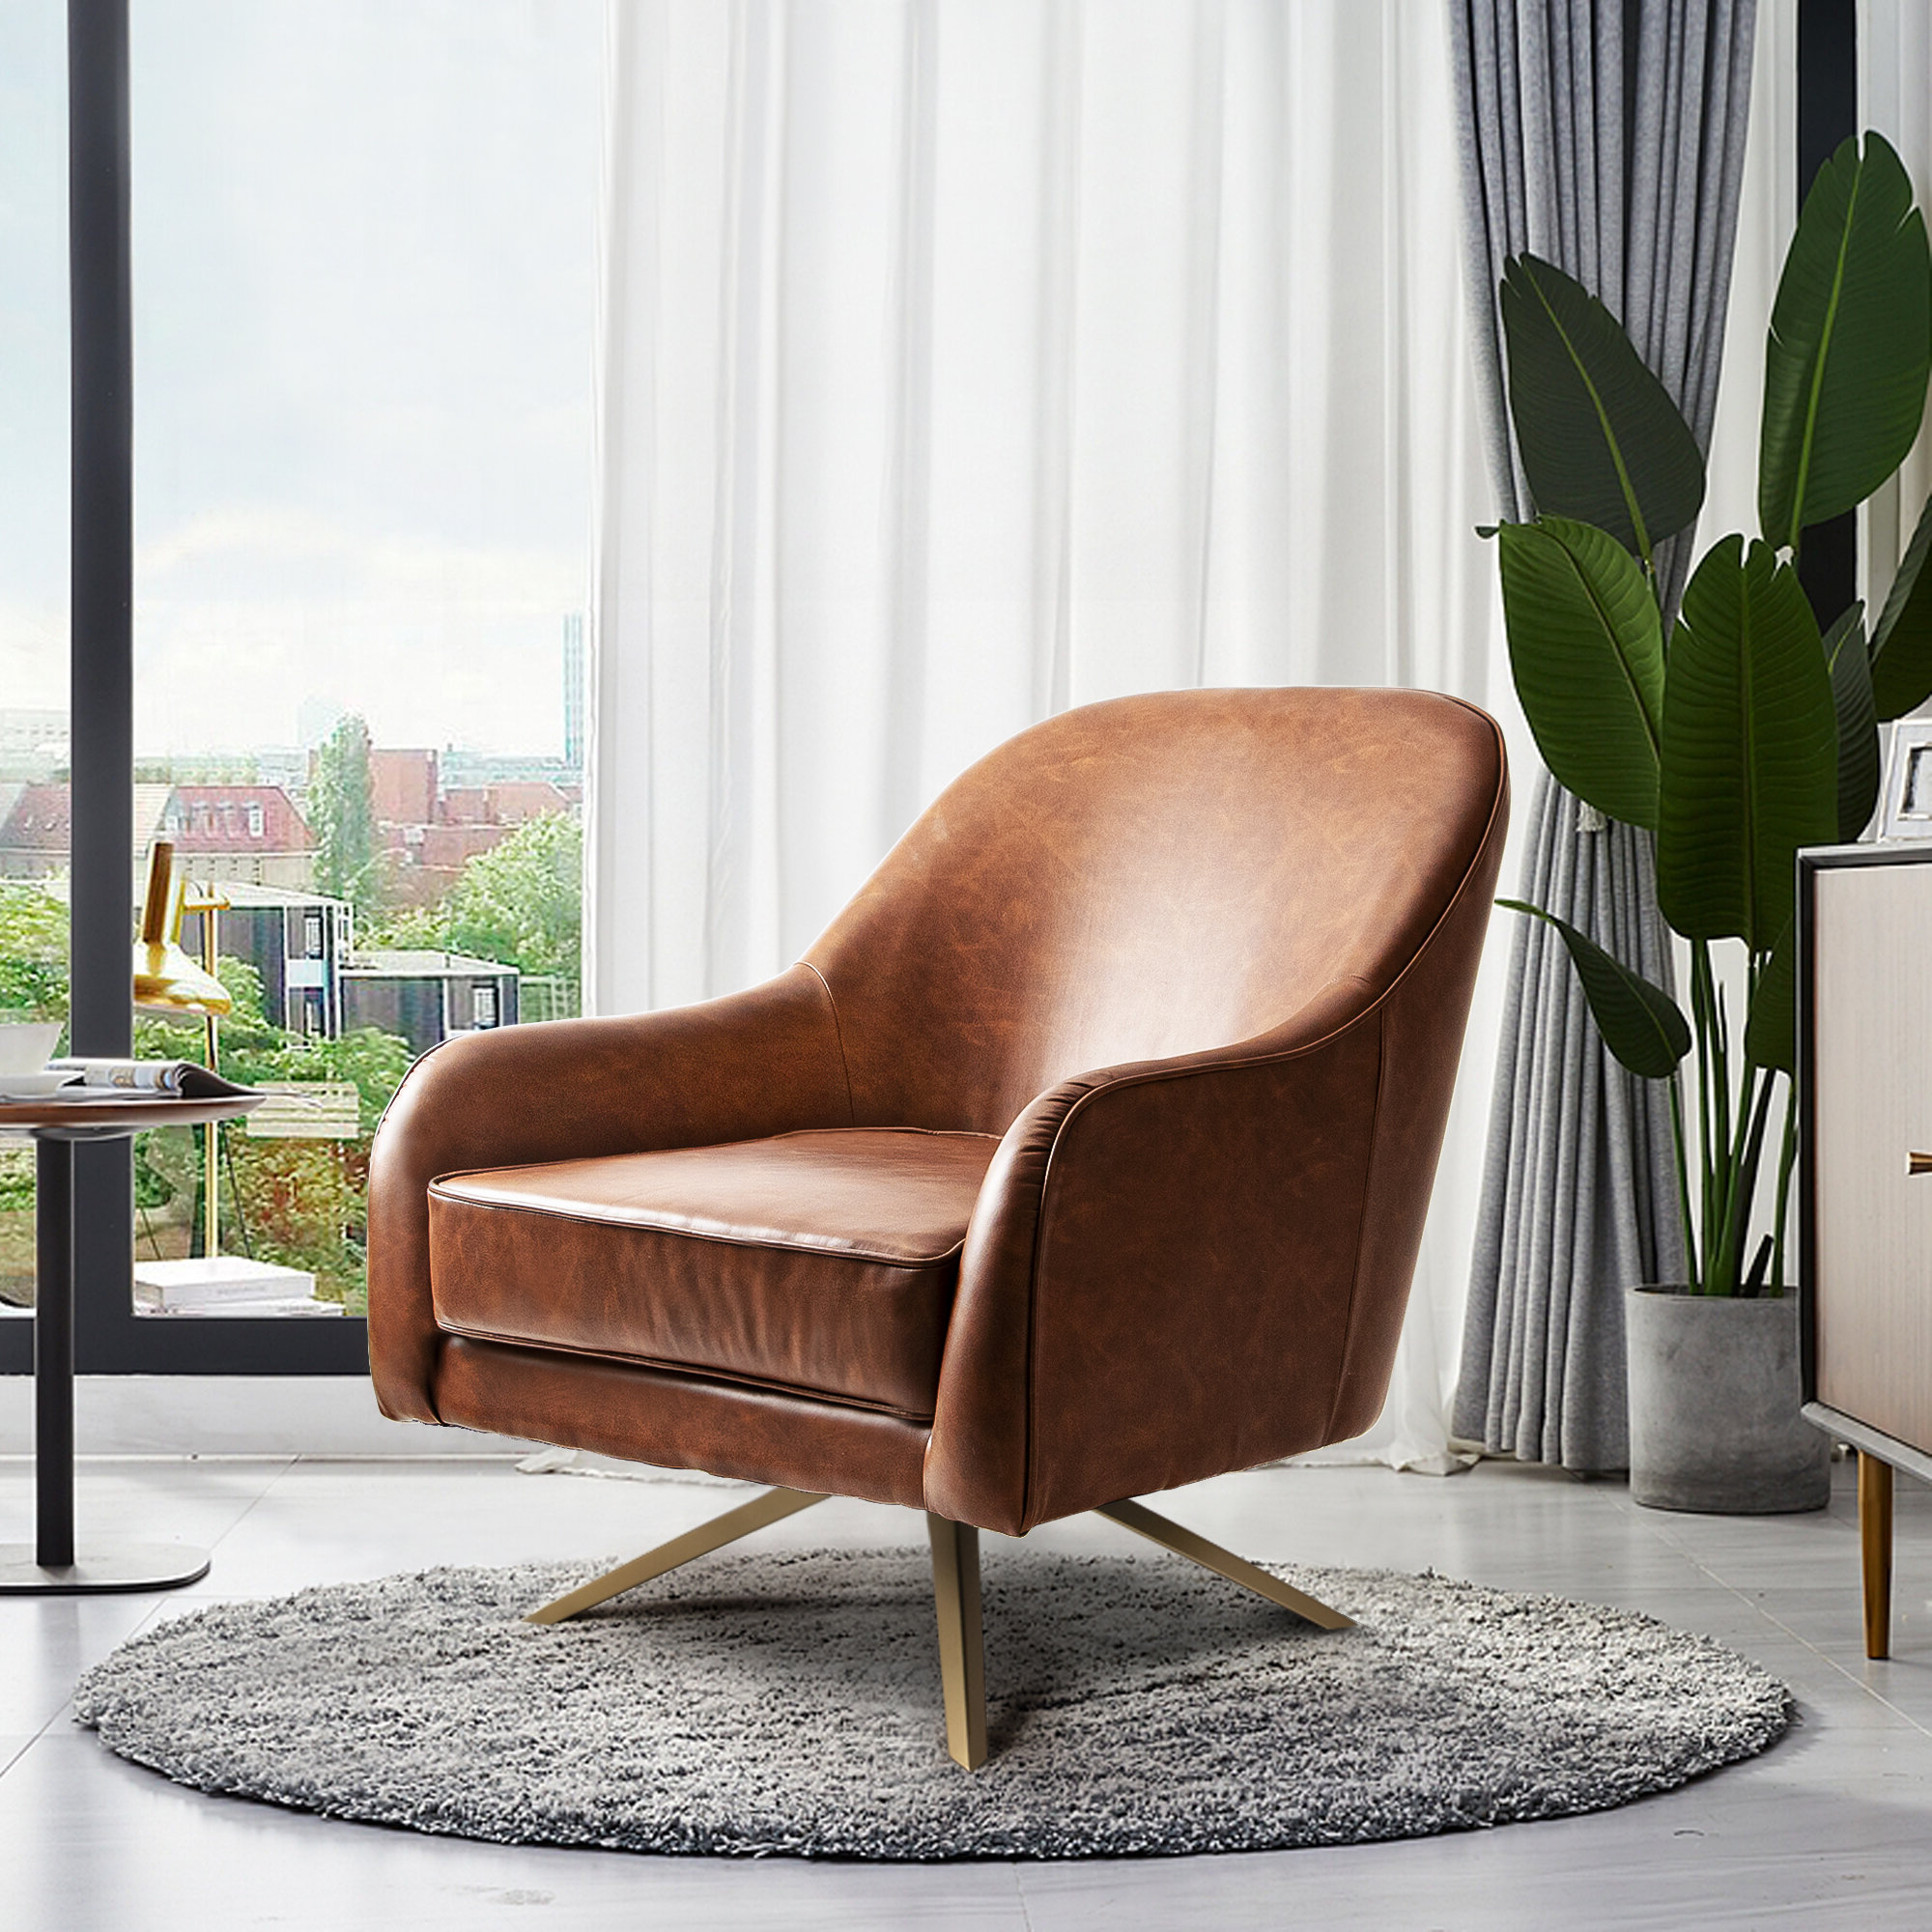 Faux Leather Removable Cushions Small Accent Chairs You'll Intended For 2019 Hazley Faux Leather Swivel Barrel Chairs (View 20 of 20)